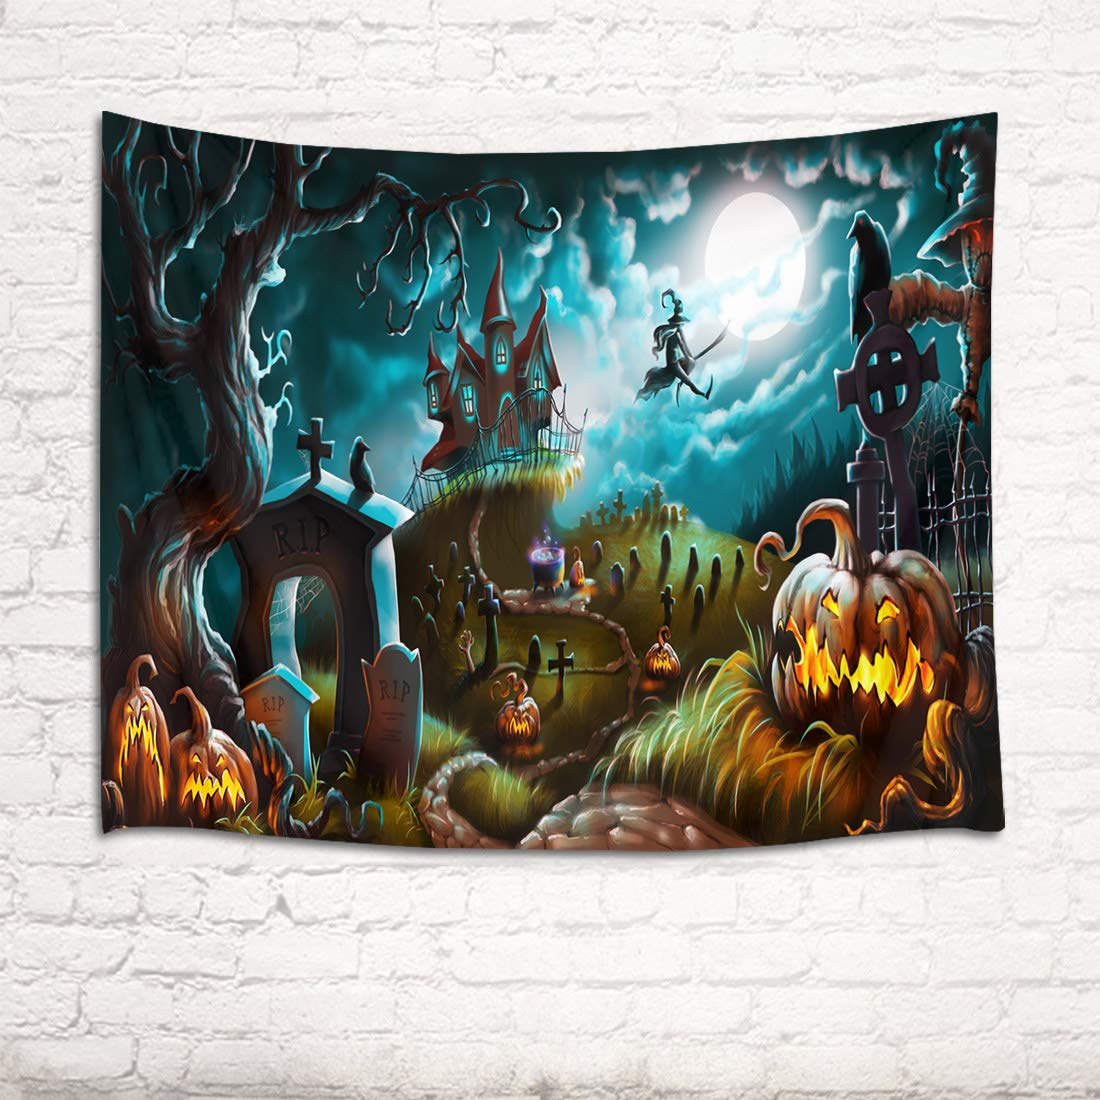 HVEST Halloween Tapestry Night Tapestry Wall Hangings Skulls and Pumpkin by The Gate Wall Blanket for Bedroom Living Room Dorm Decor,60 W X 40 H INCH